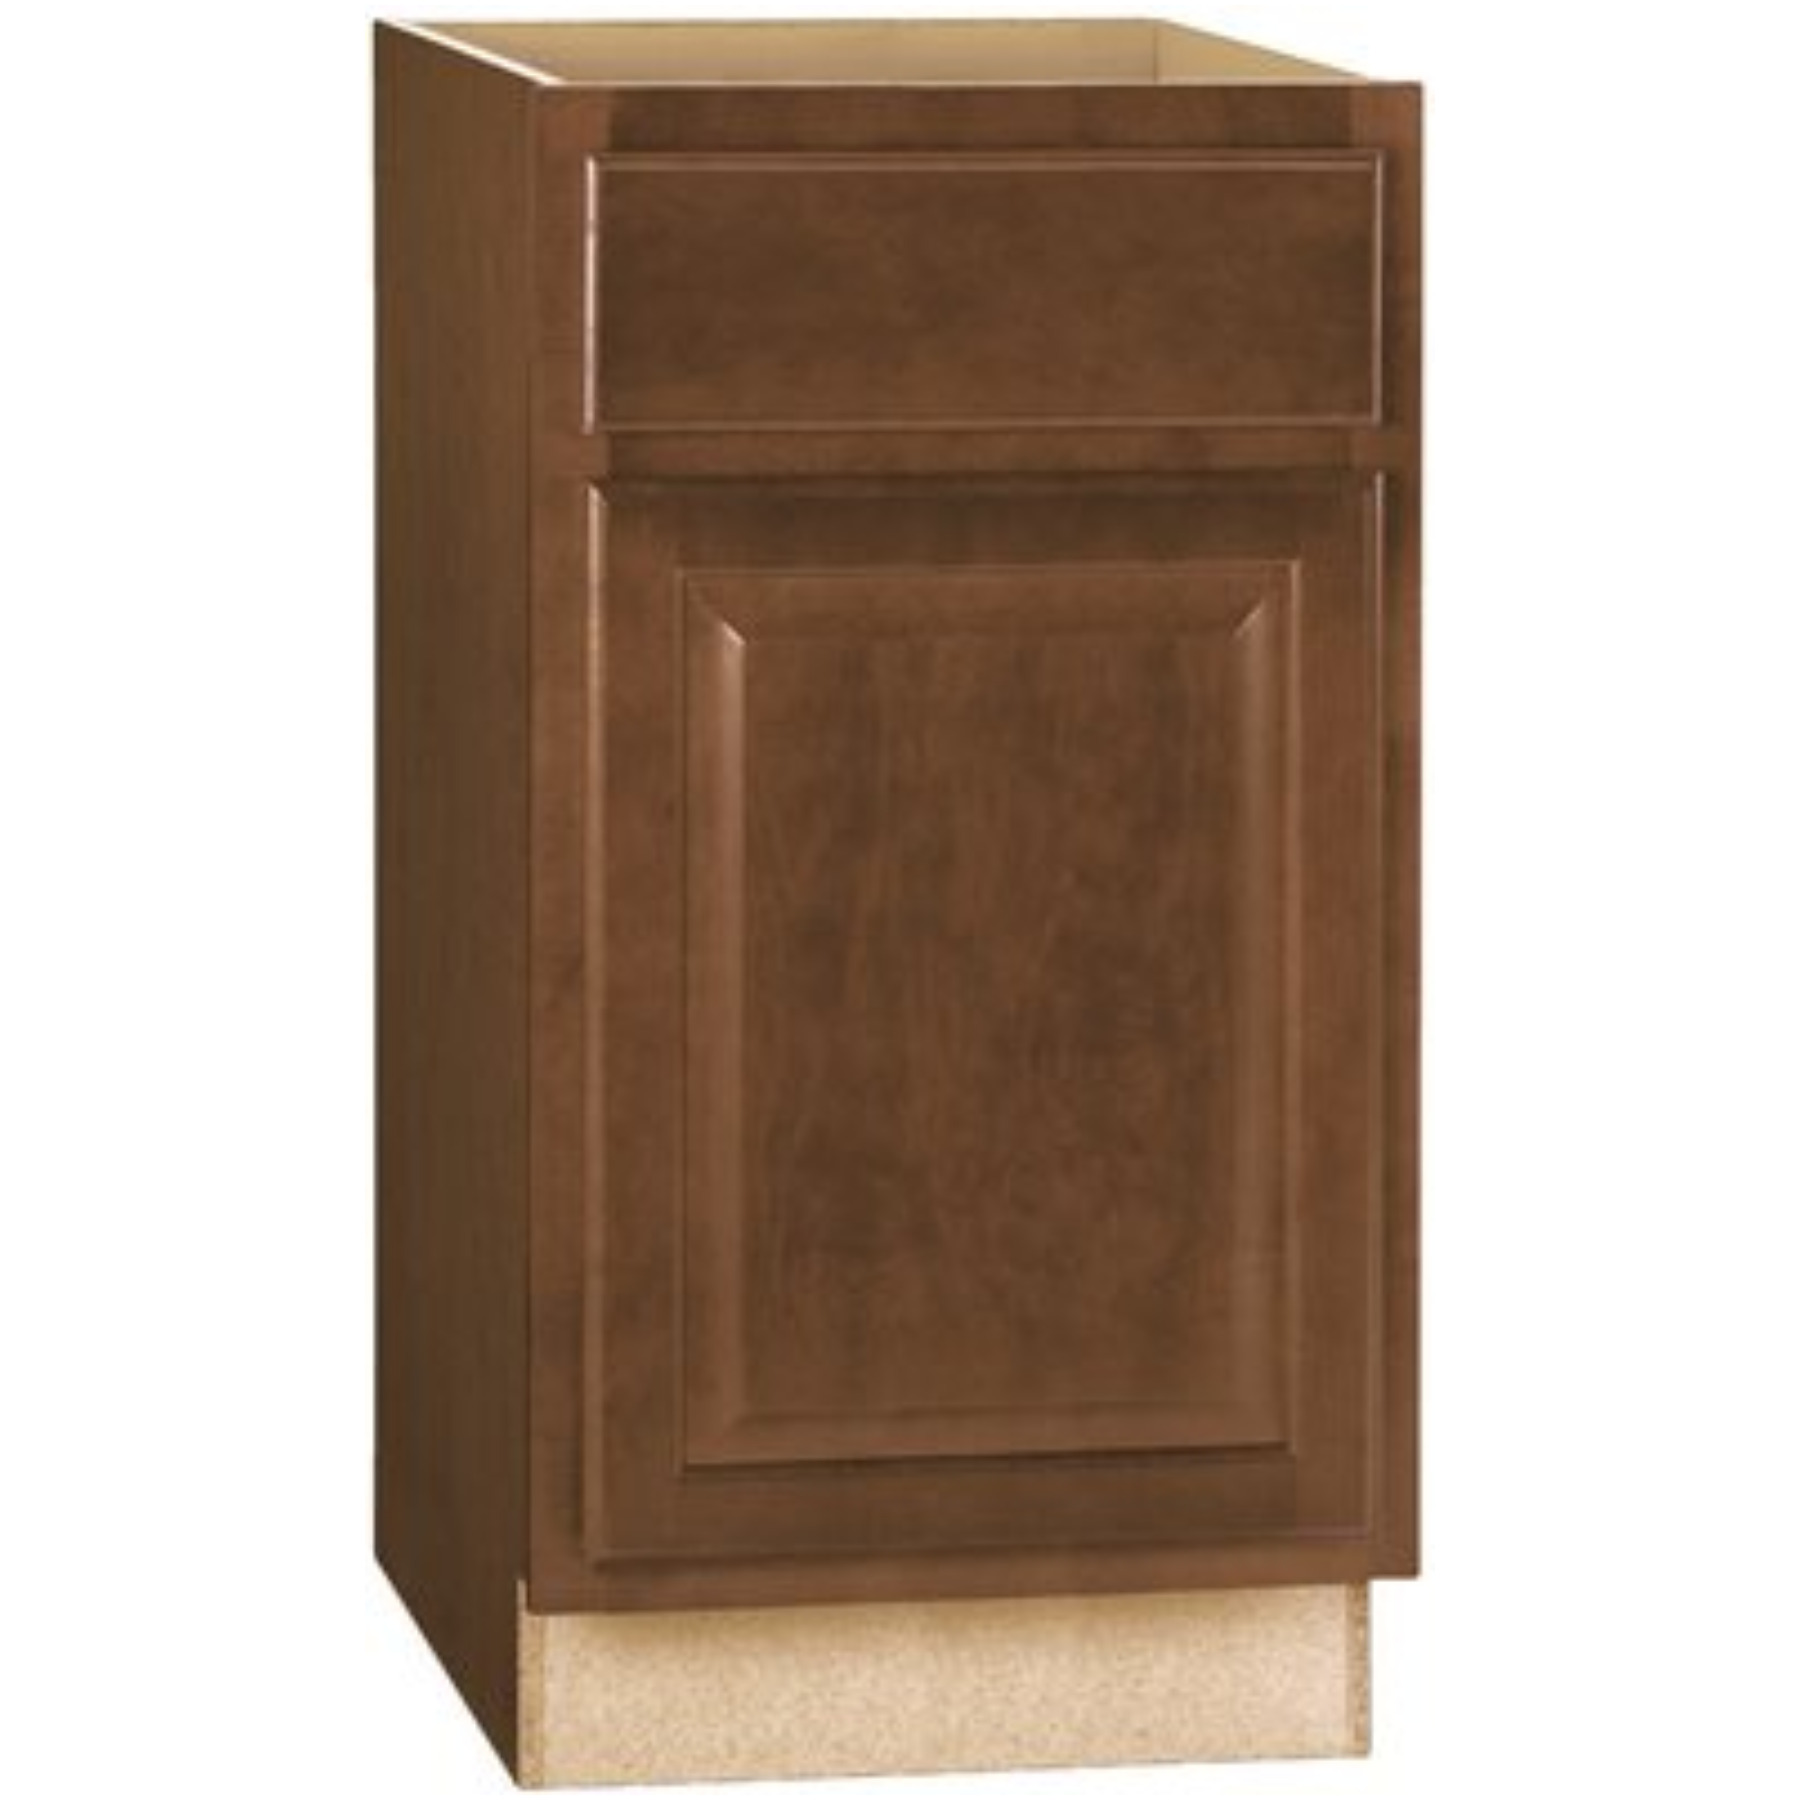 RSI HOME PRODUCTS HAMILTON BASE CABINET, FULLY ASSEMBLED, RAISED PANEL, CAFE, 21X34-1/2X24 IN.